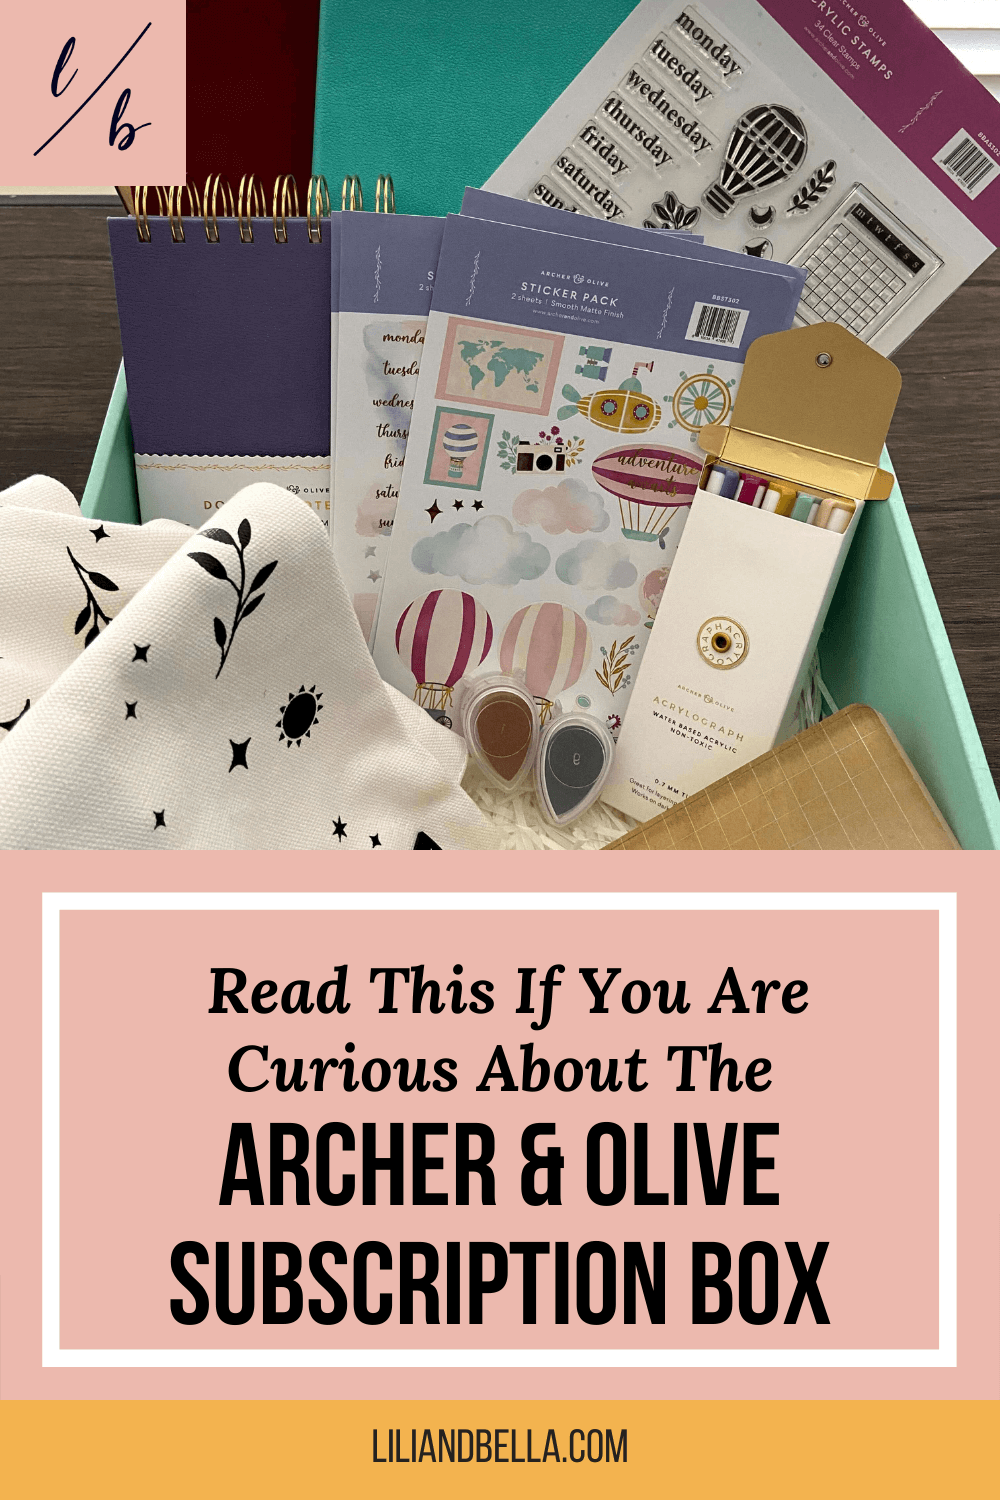 Archer & Olive subscription box showing notebooks, stamps, acrylographs, tote bag, and stickers that are included.